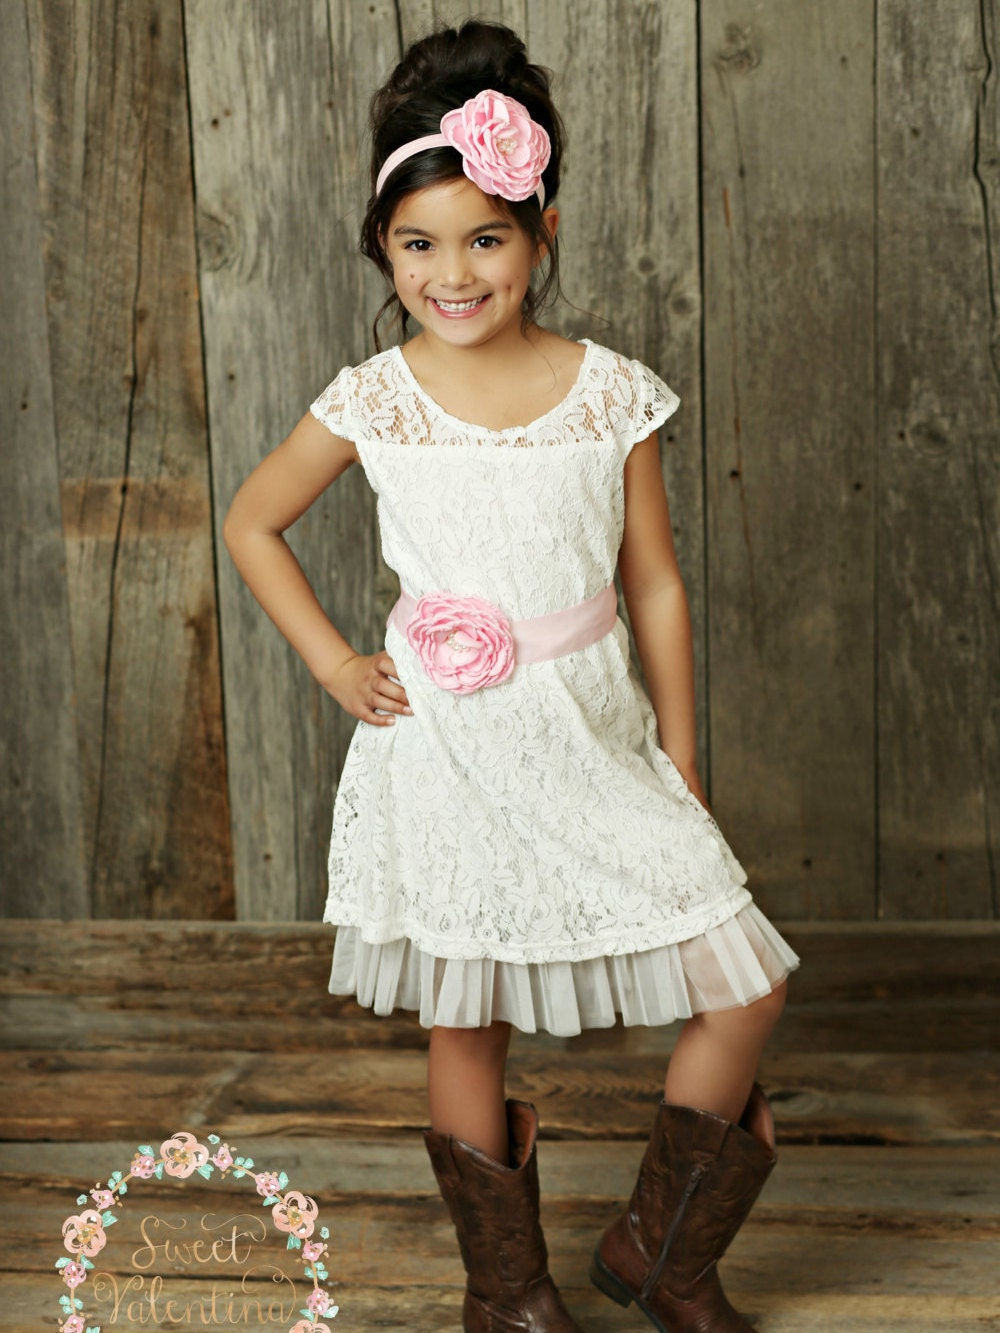 Flower girl dress rustic flower girl dress country flower for Country wedding flower girl dresses